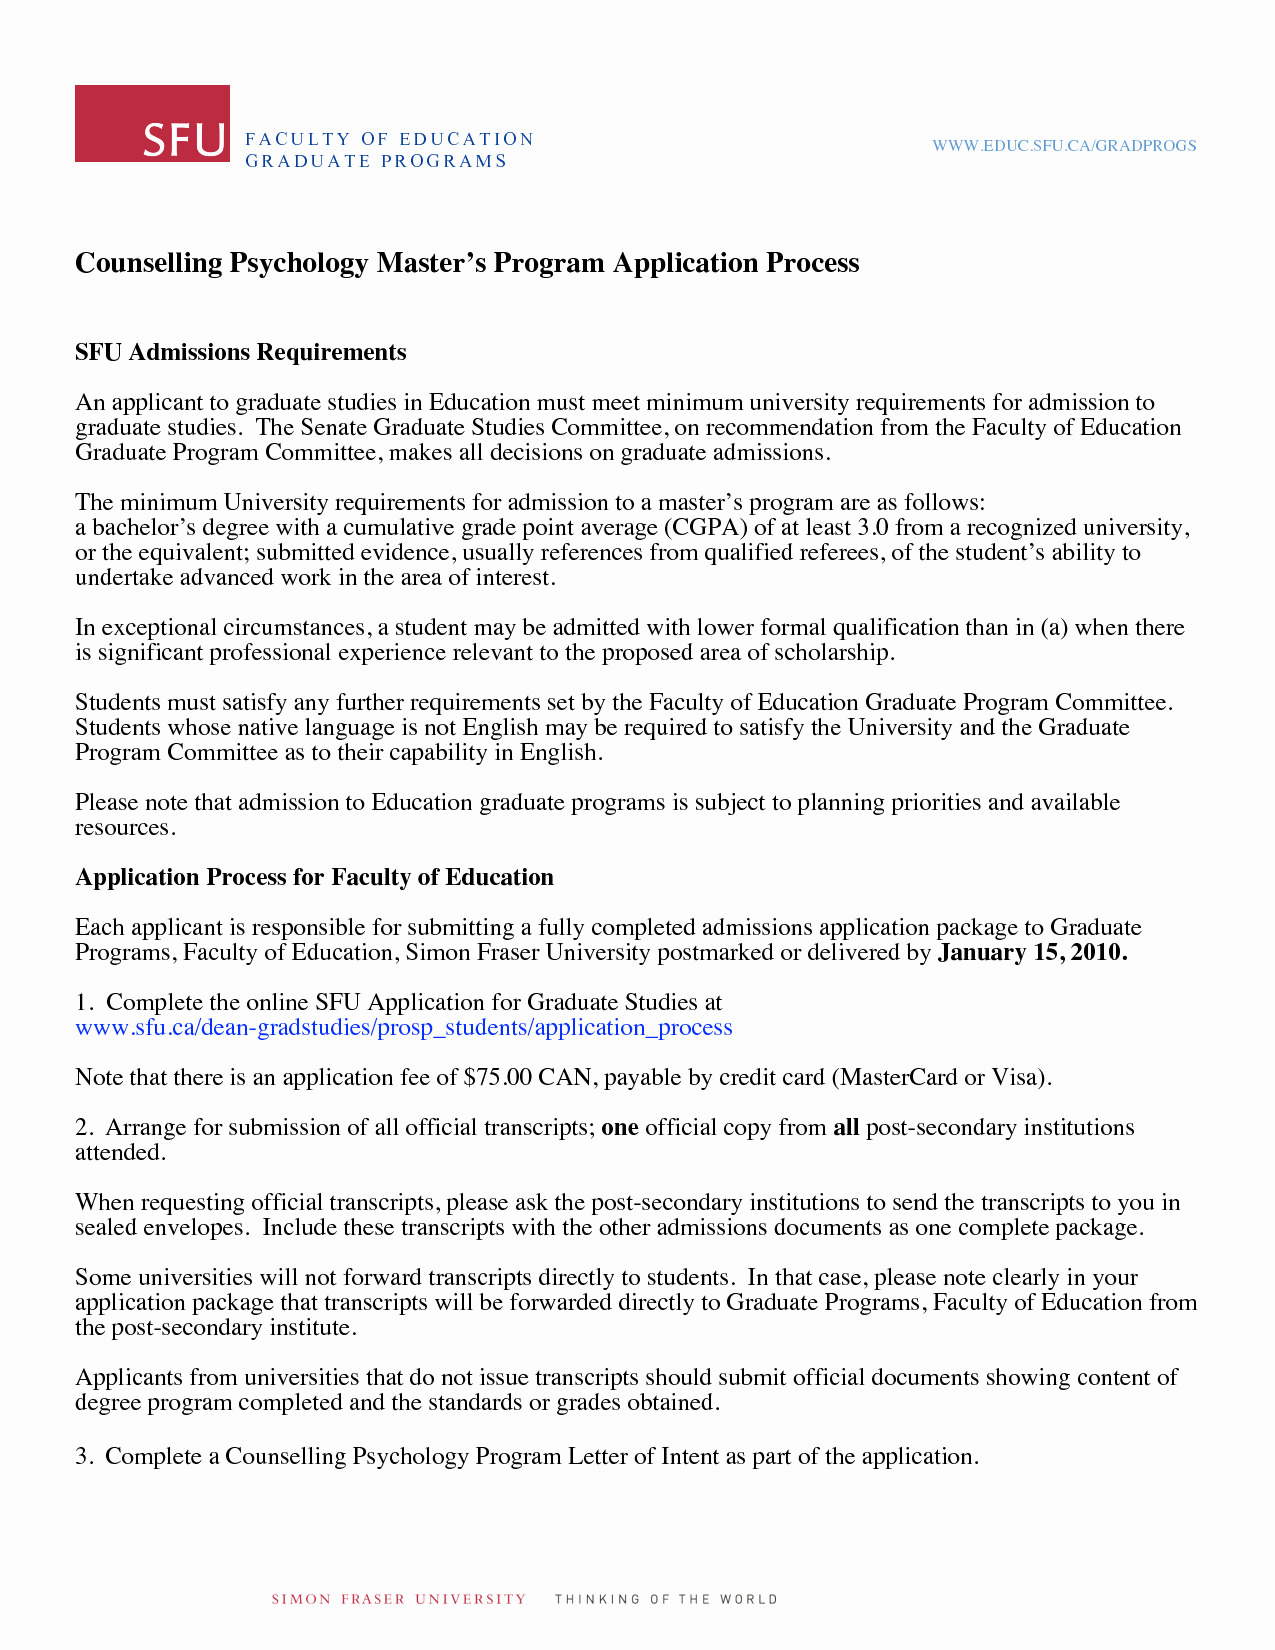 Phd Letter Of Intent Sample Unique Re Mendation Letter for Psychology Graduate Program